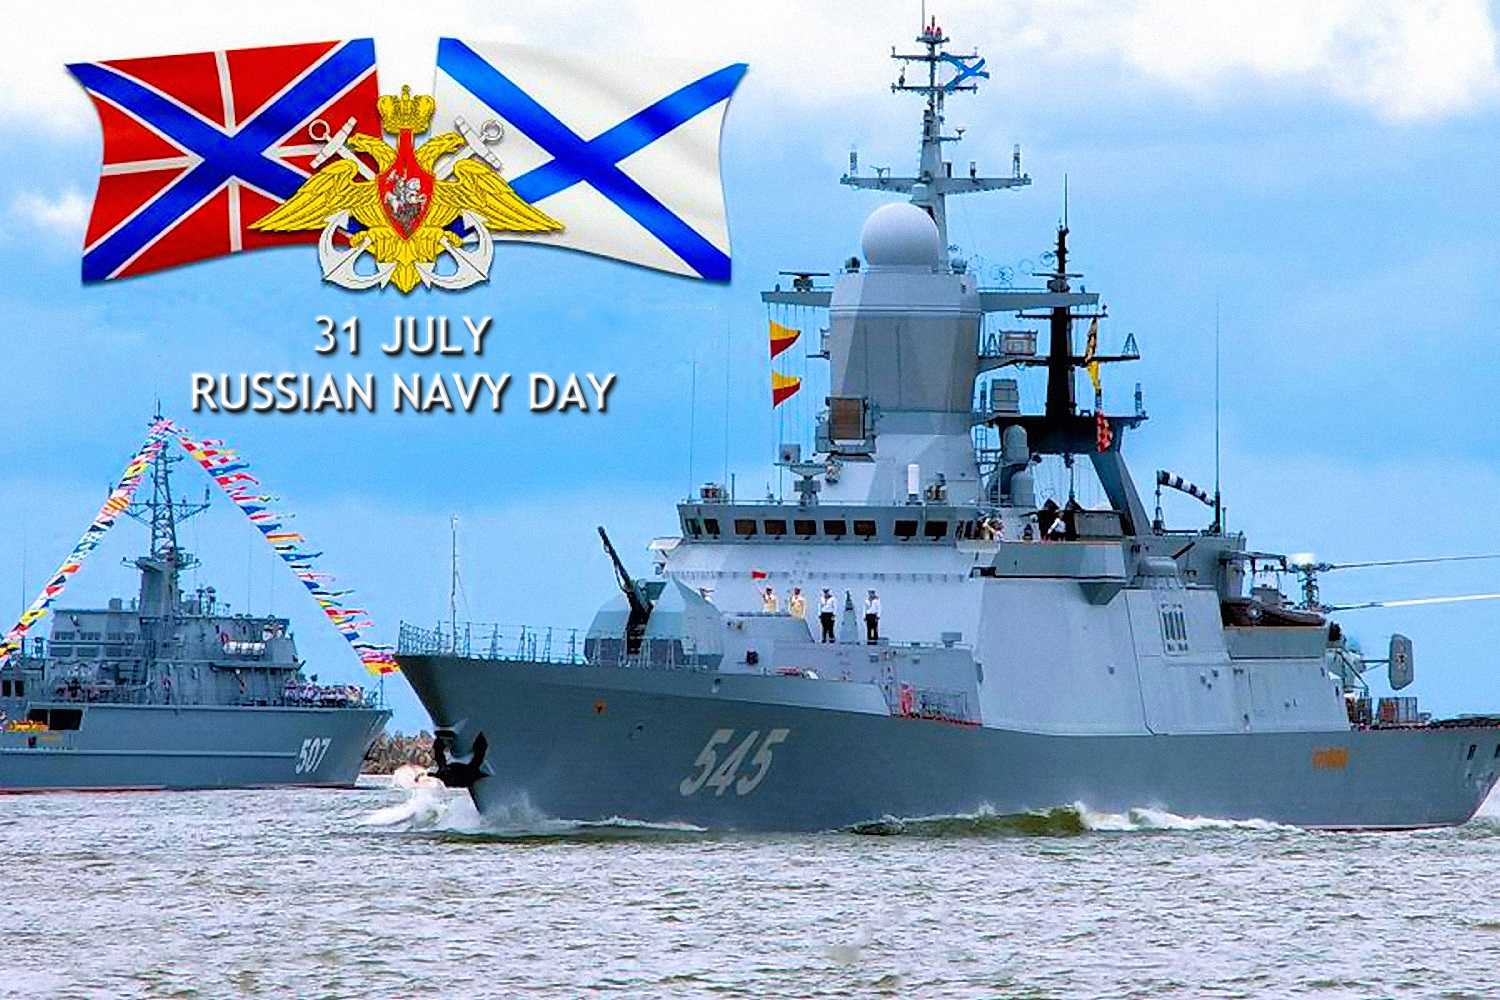 00 navy day russia 310716